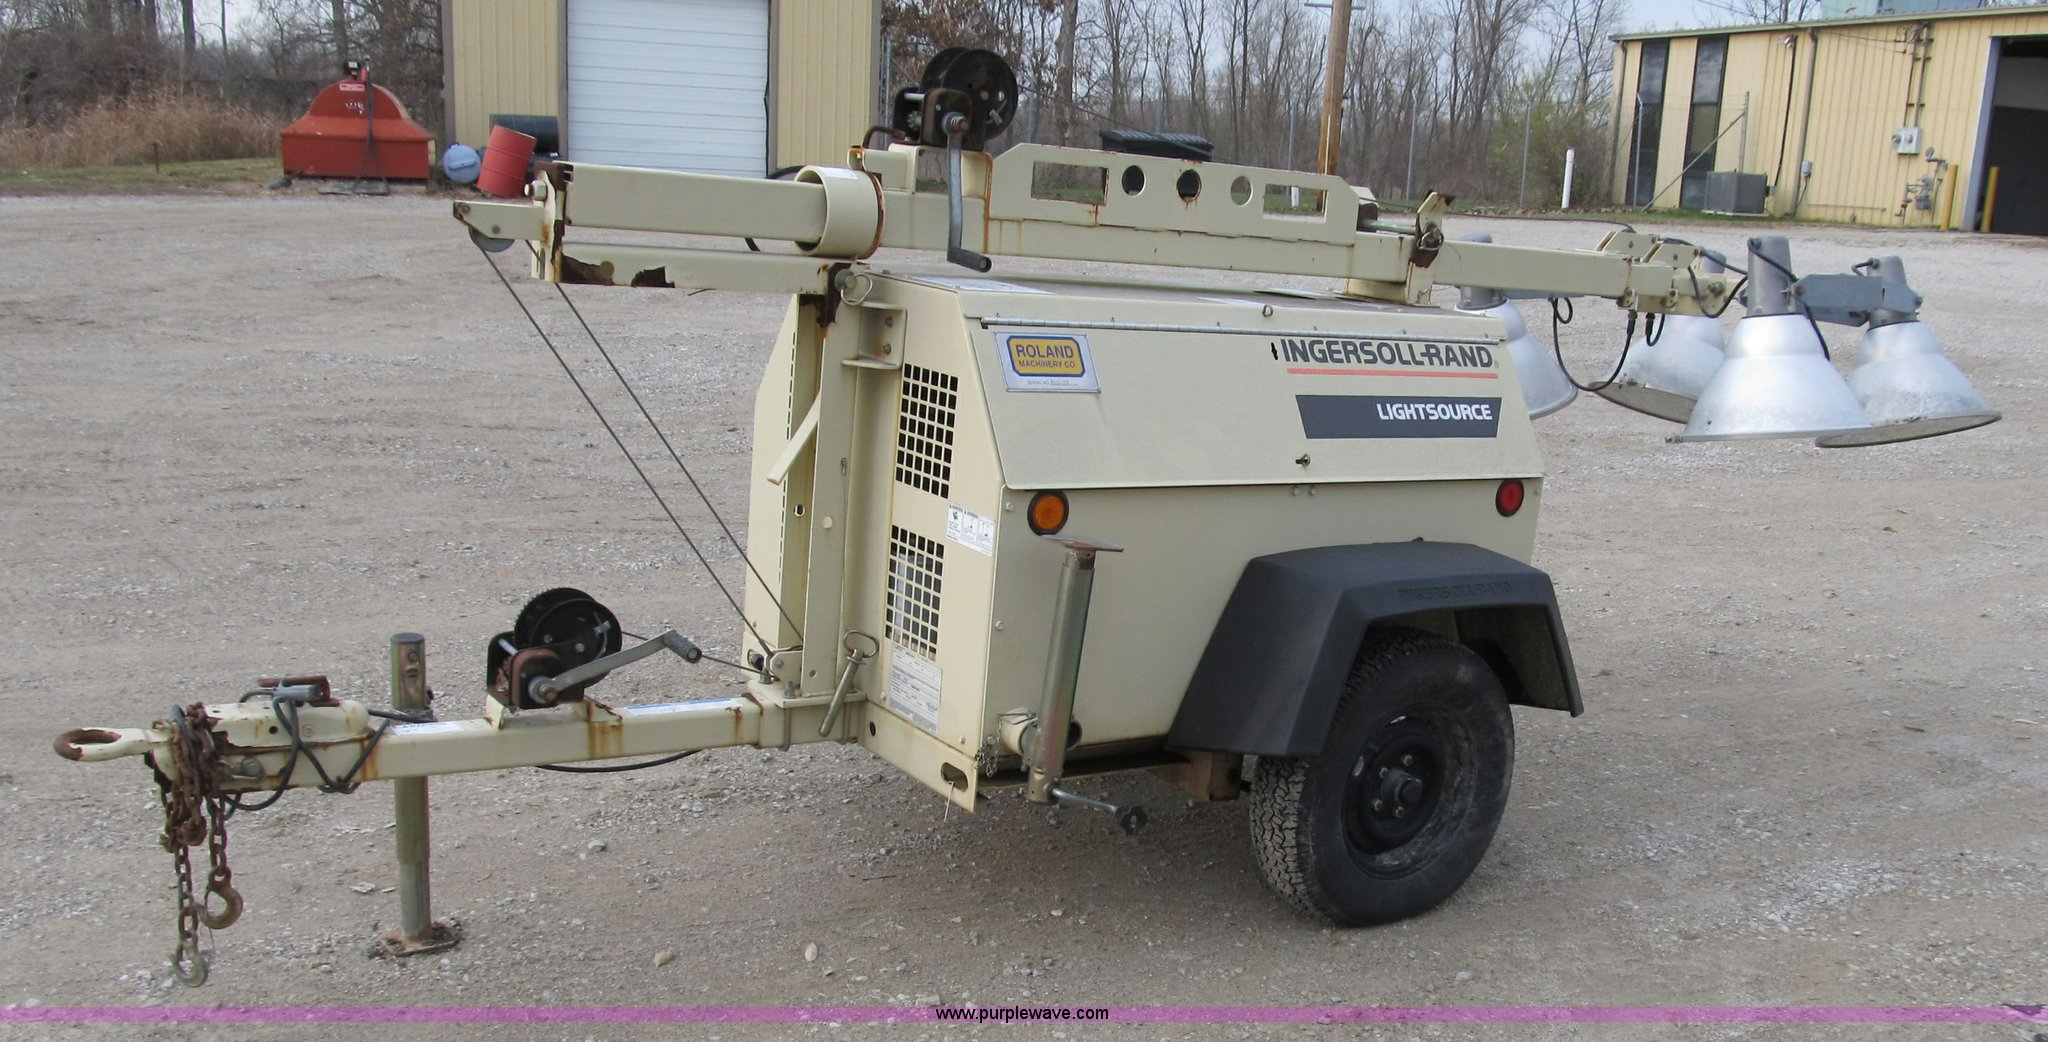 Ingersoll Rand Light Source 2003 Centralroots Com